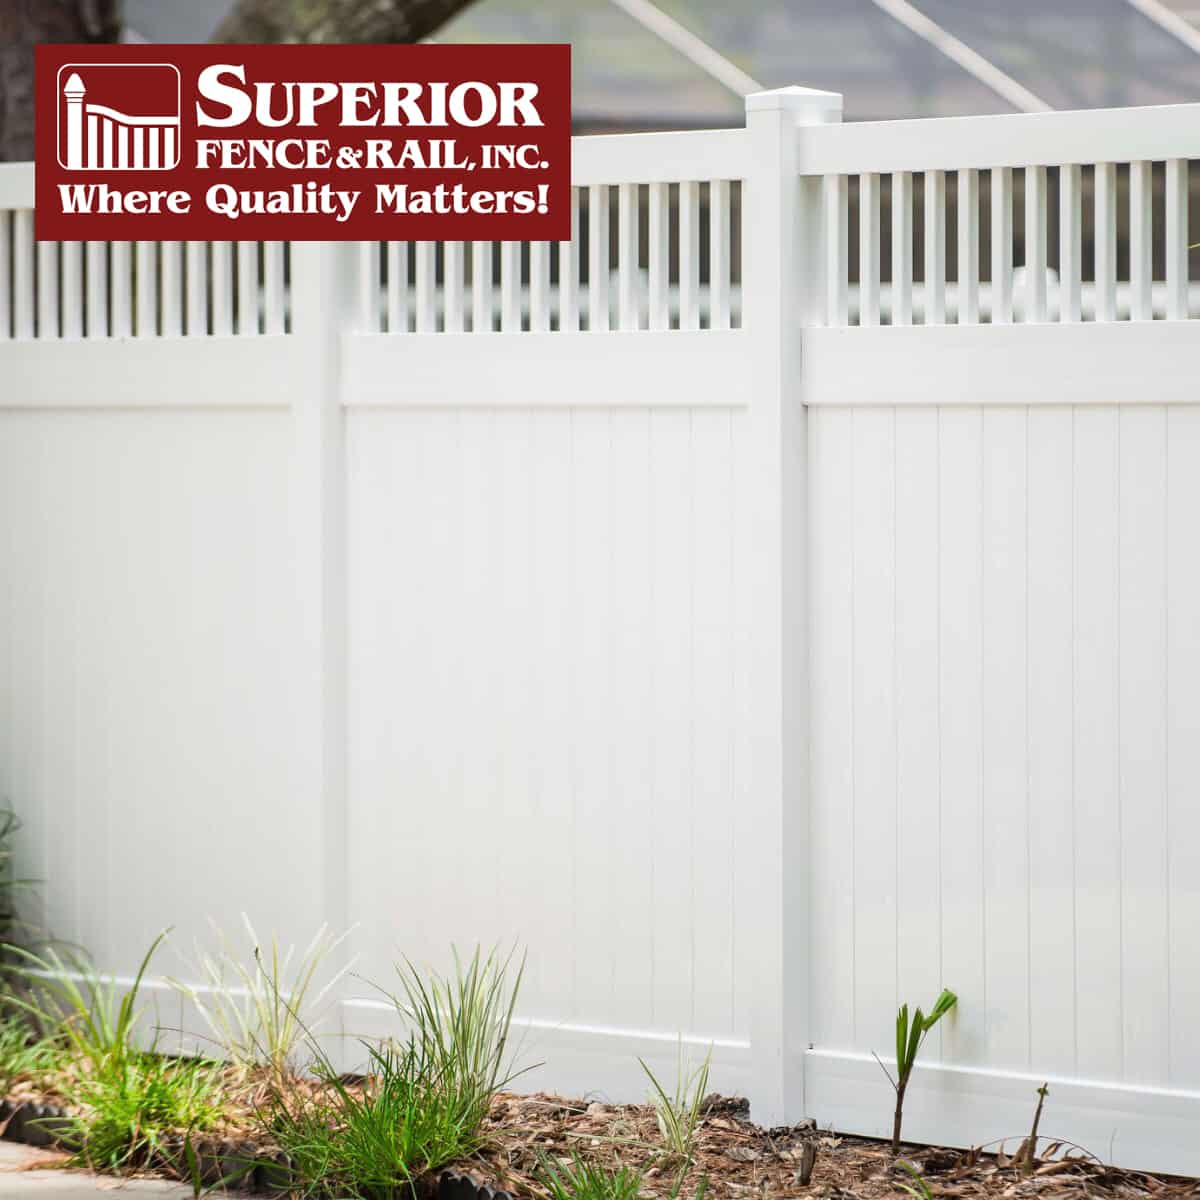 Osprey fence company contractor